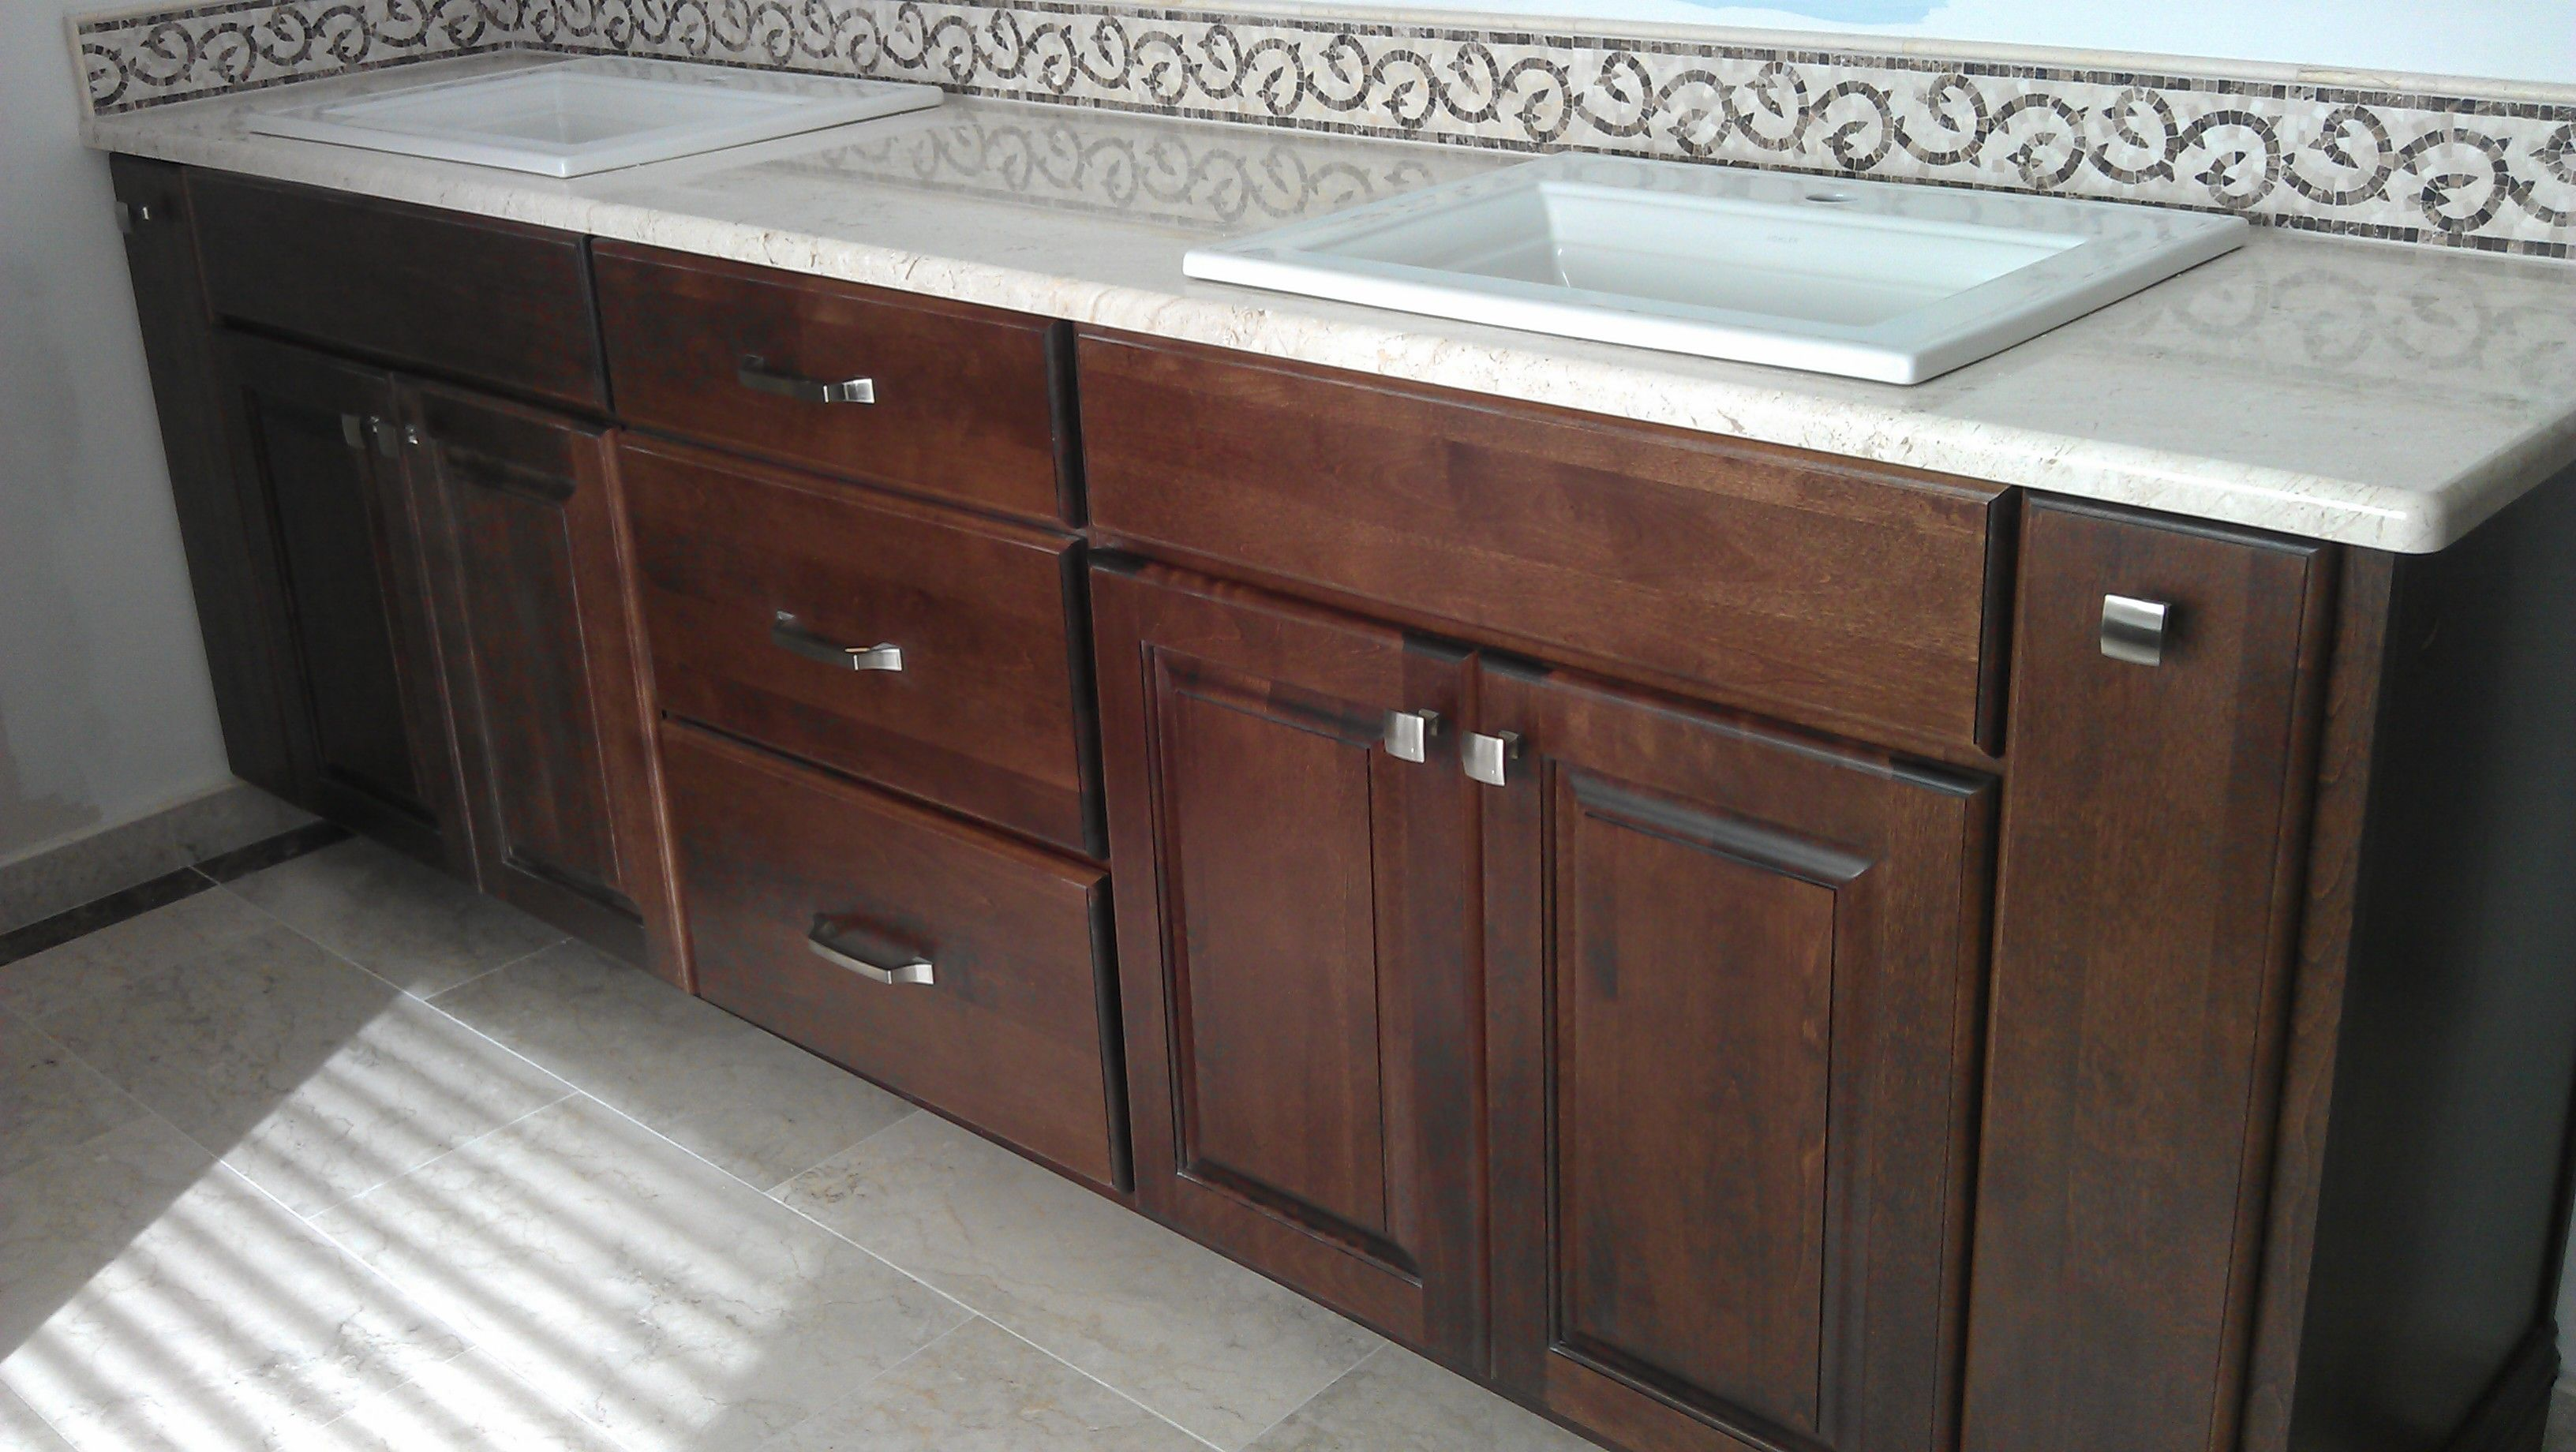 Koch Classic cabinetry. Seneca raised panel door style. Mocha stain ...